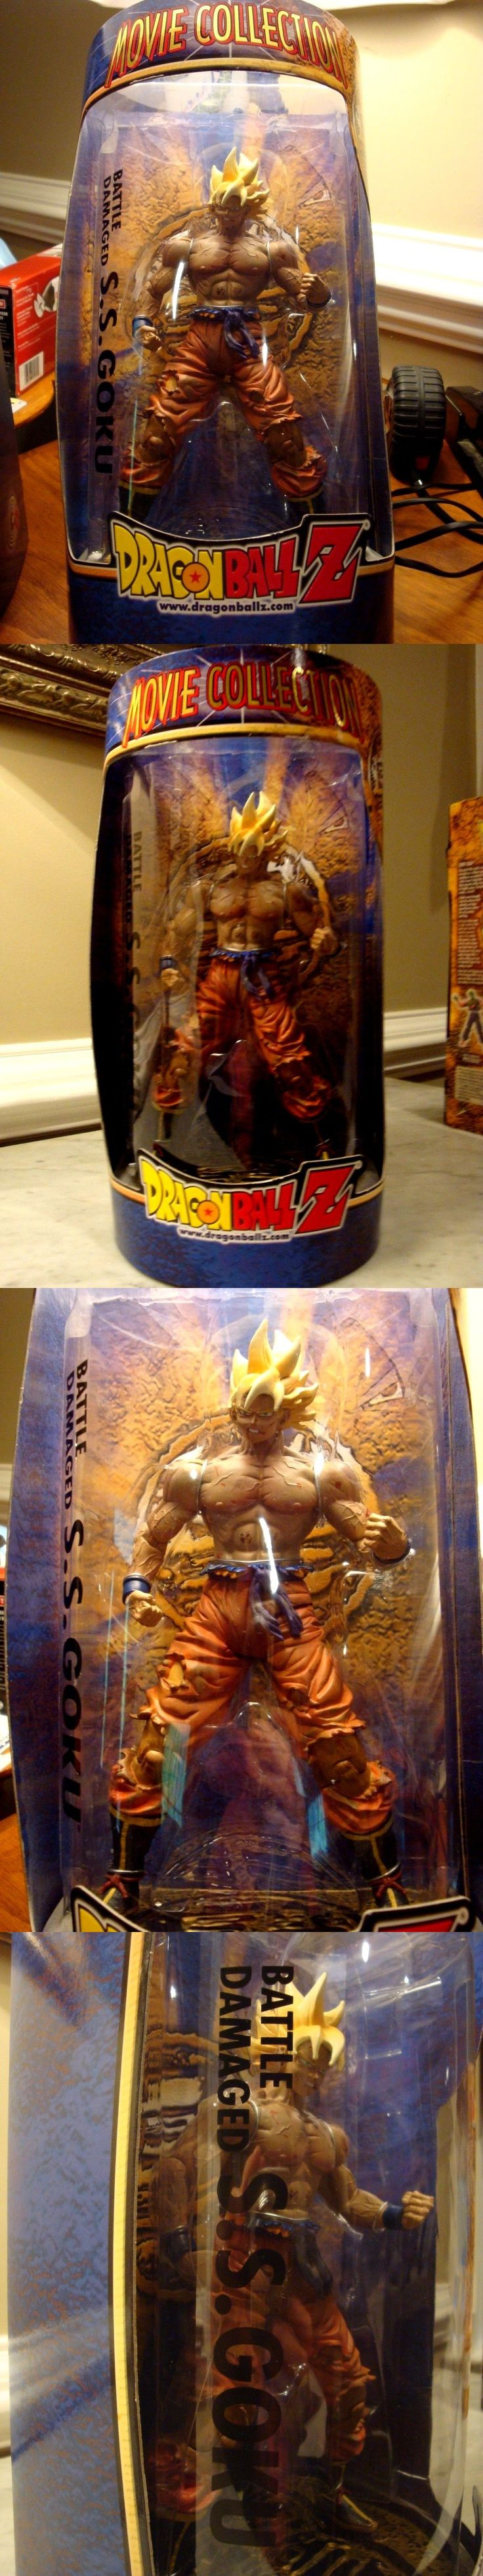 DragonBall Z 7117: Dragon Ball Z Movie Collection Battle Damaged Ss Goku New In Box Nib - Sealed -> BUY IT NOW ONLY: $49.99 on eBay!